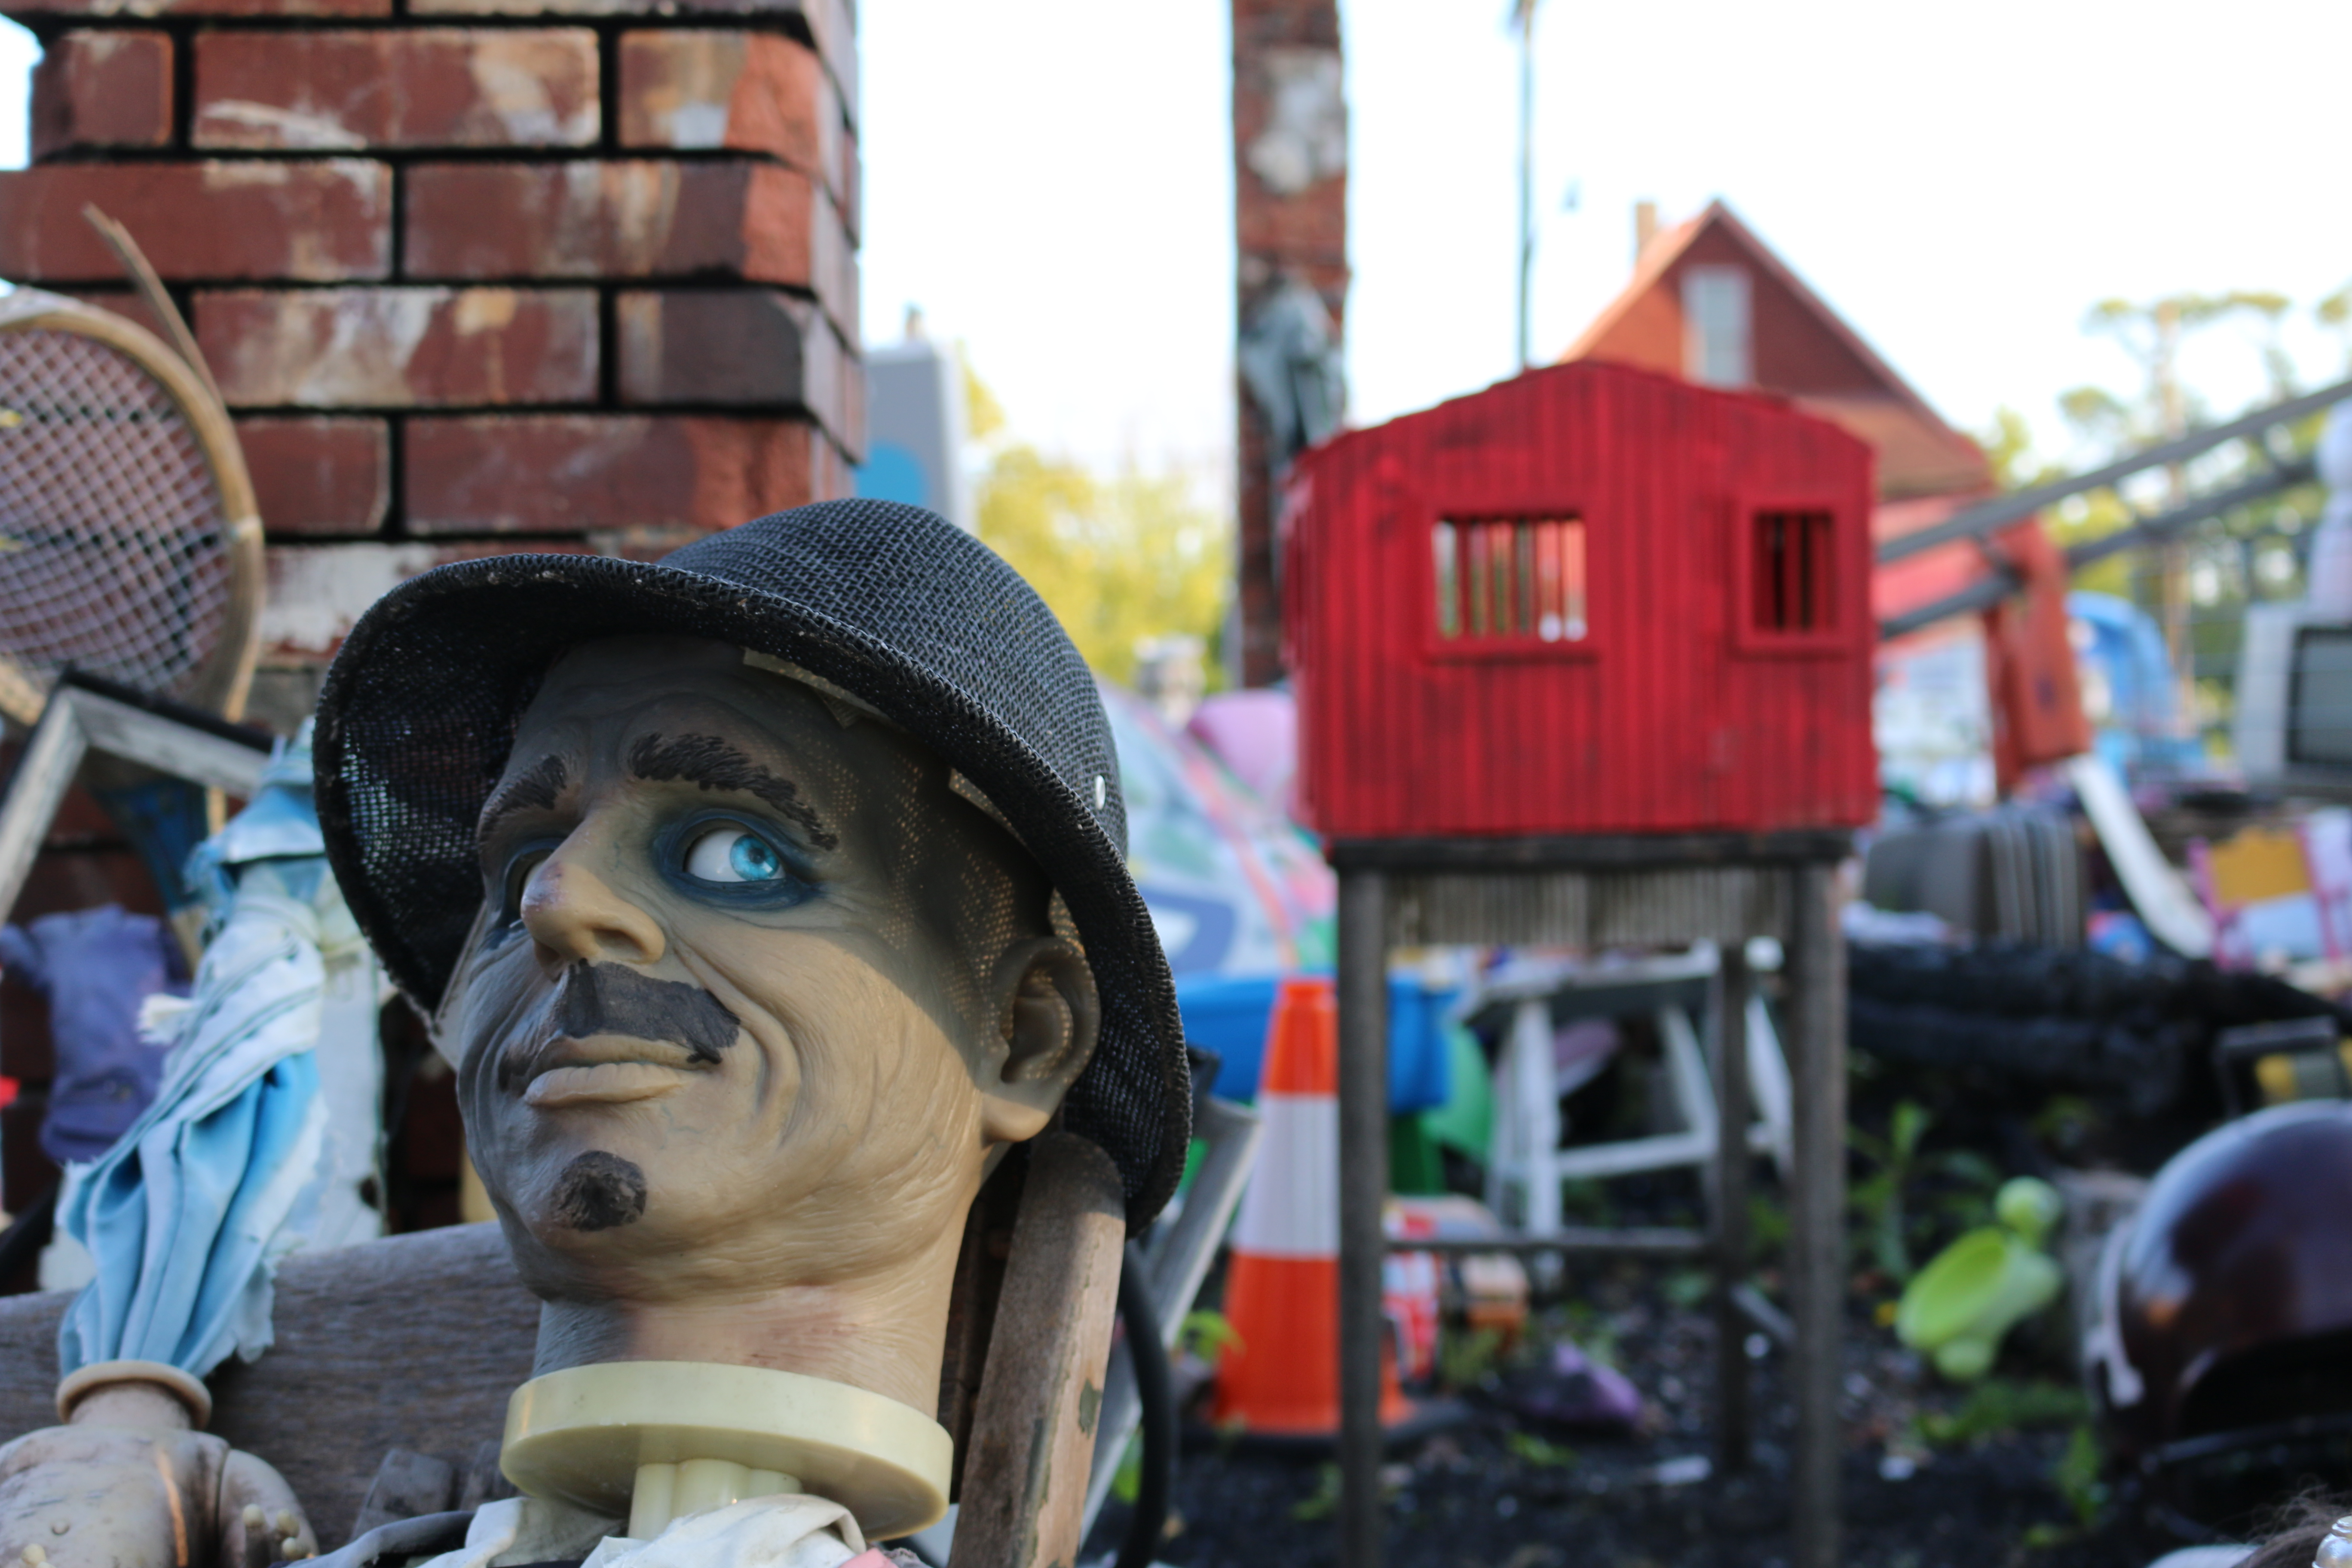 Close up of rubber head with blue eyeball and wool fedora; red shack on stilts blurred in background.